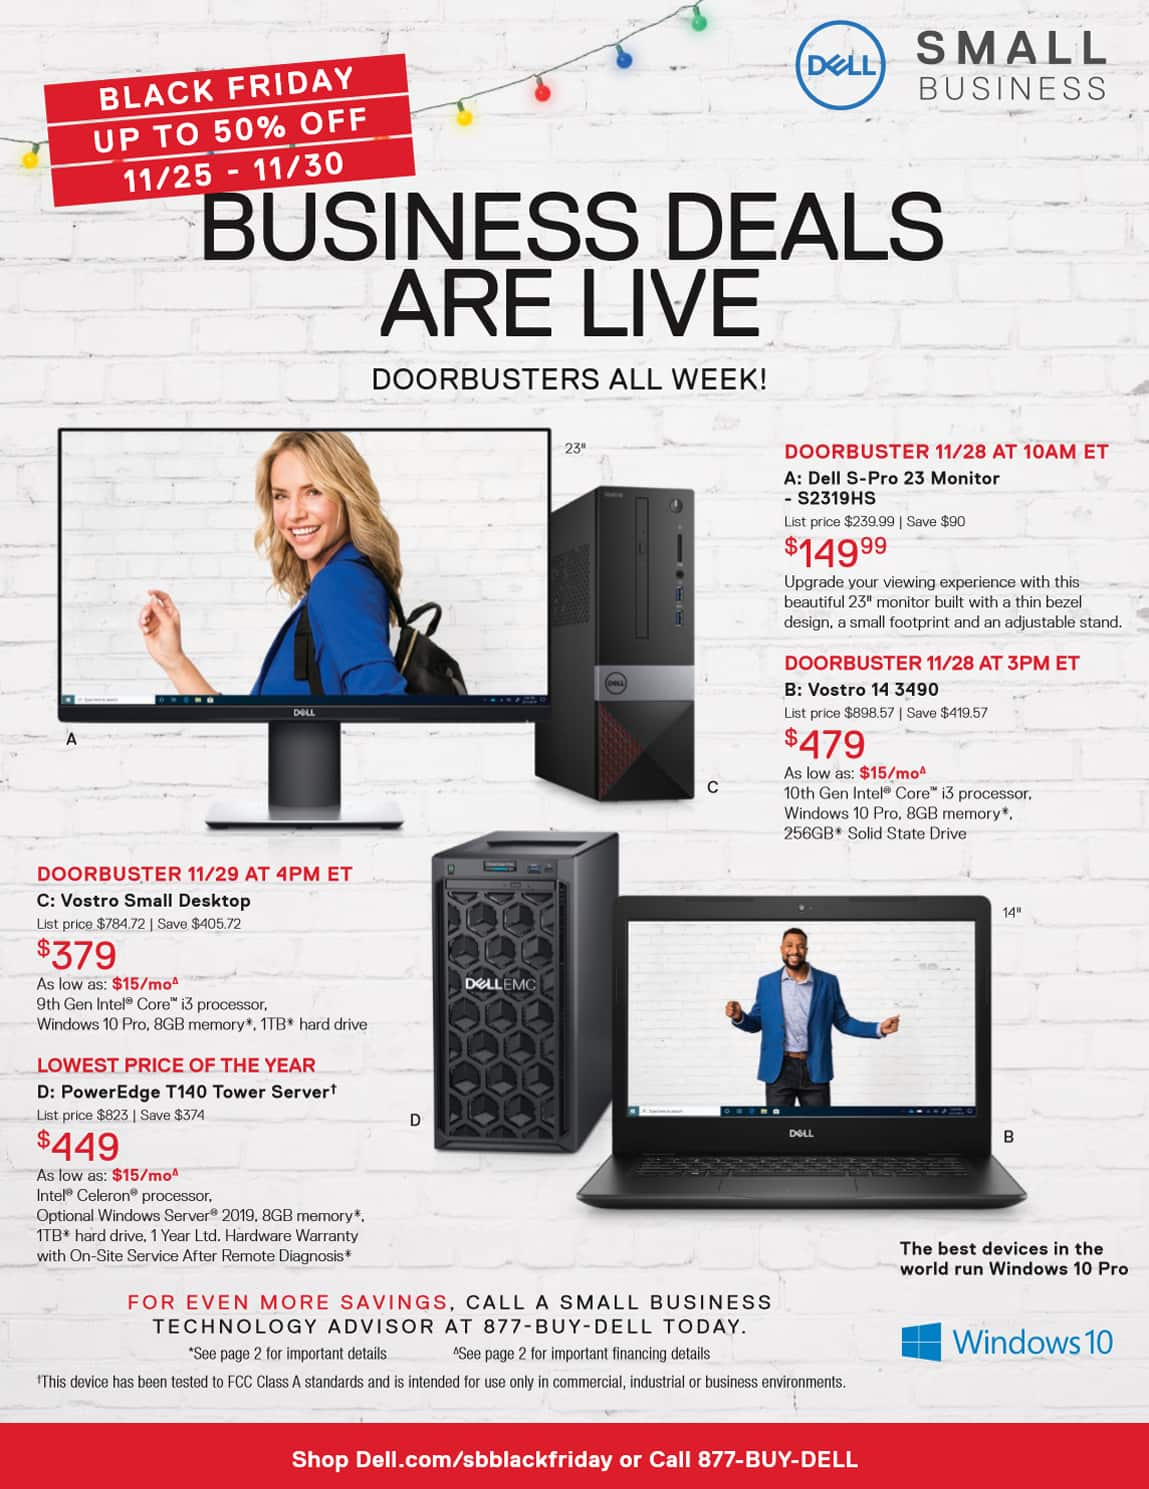 Dell Small Business Black Friday 2019 Ad Highlights